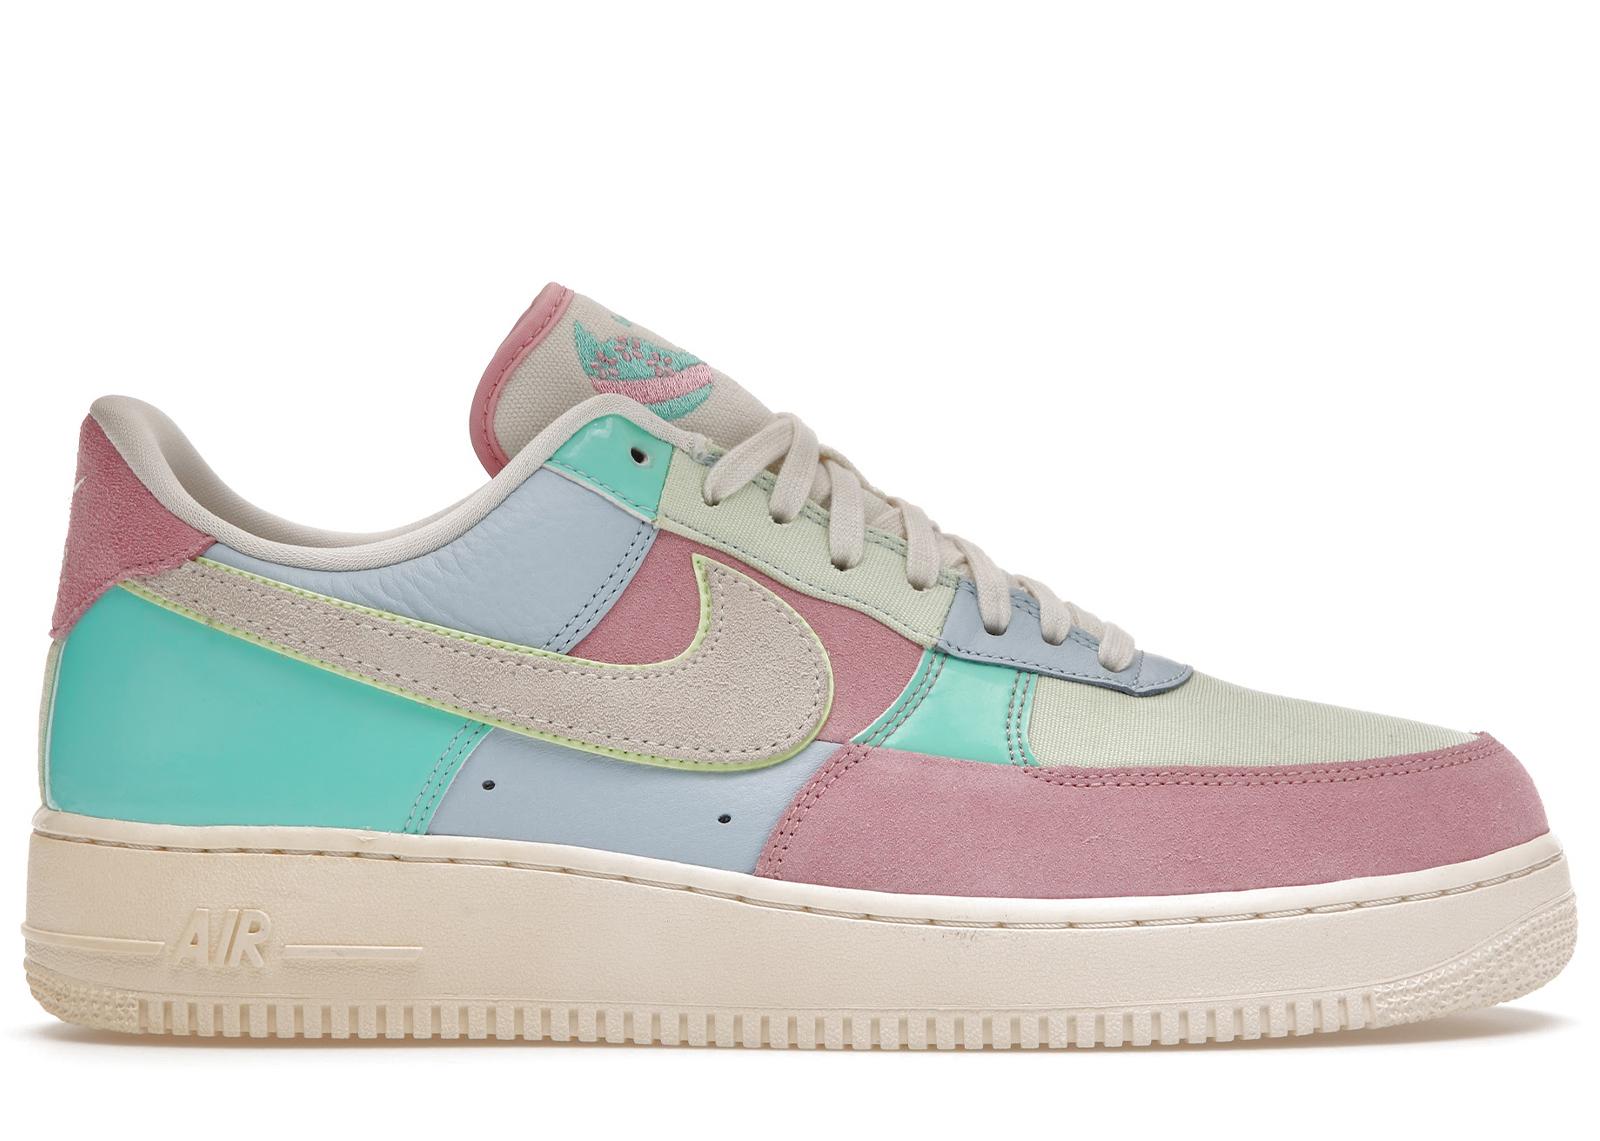 Nike Air Force 1 Low Easter (2018)